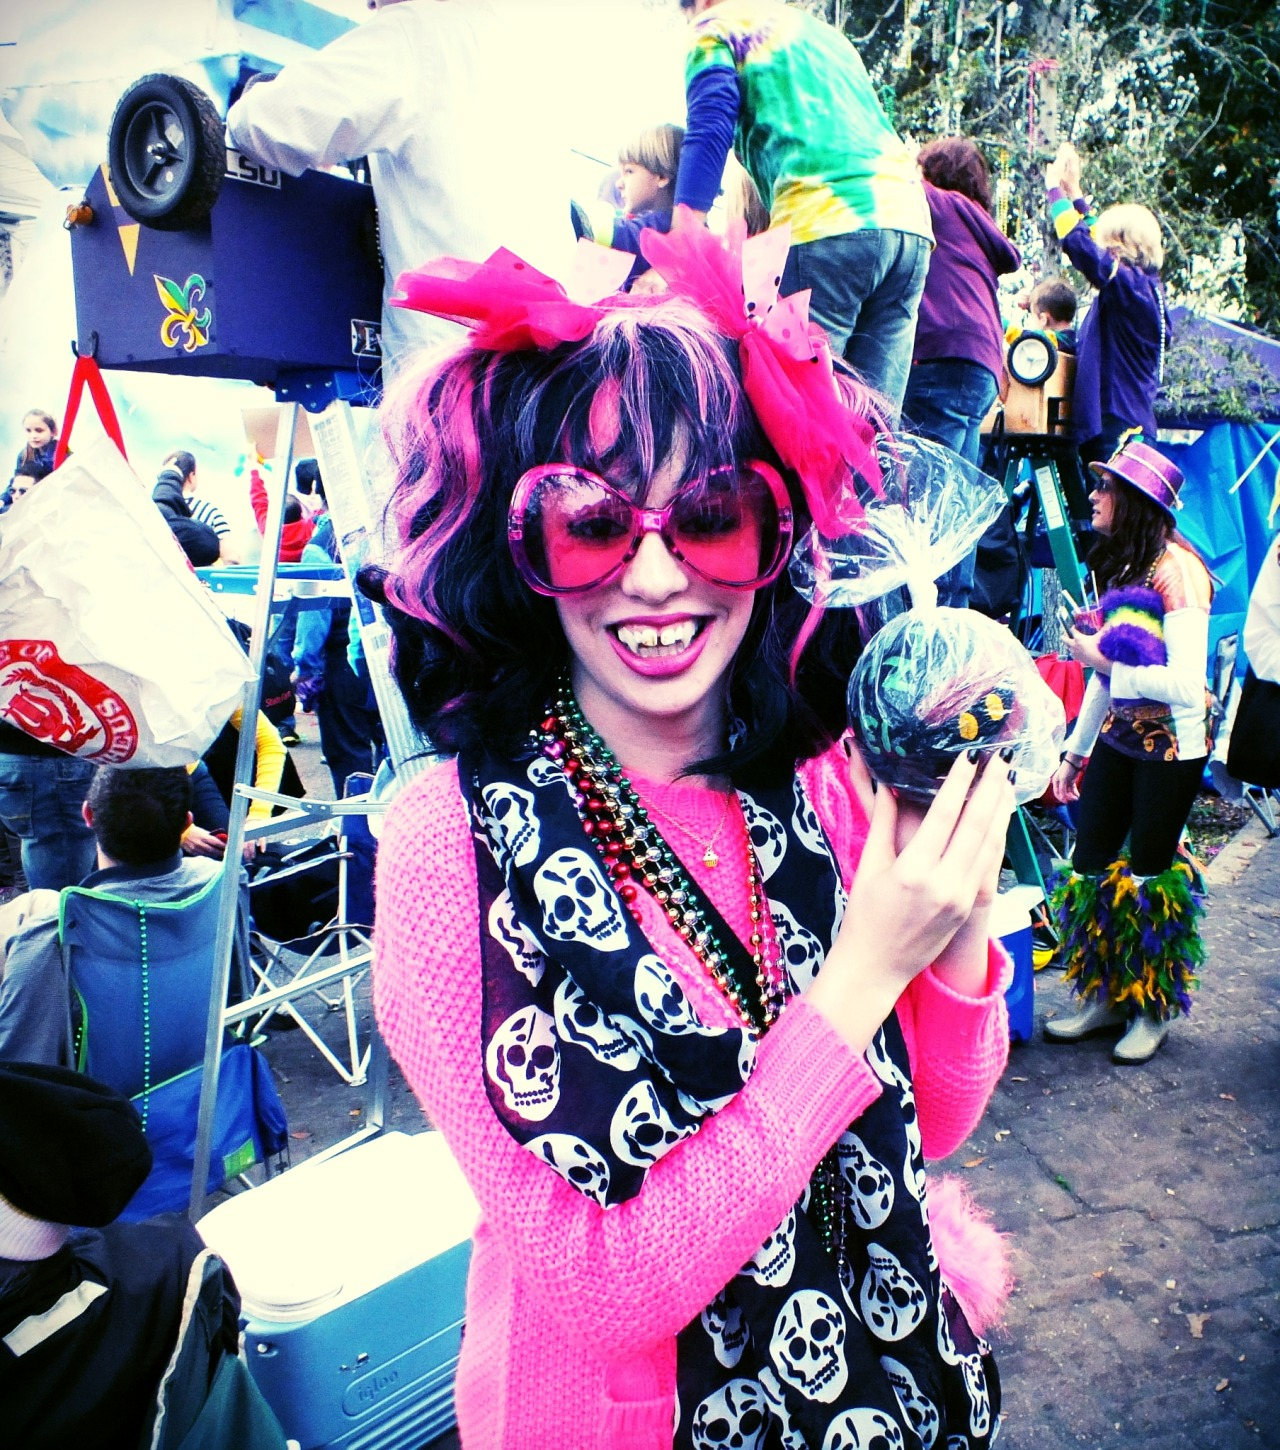 My FIRST Mardi Gras  dressed as Draculaura and getting my FIRST Zulu Coconut! YAY!  <3